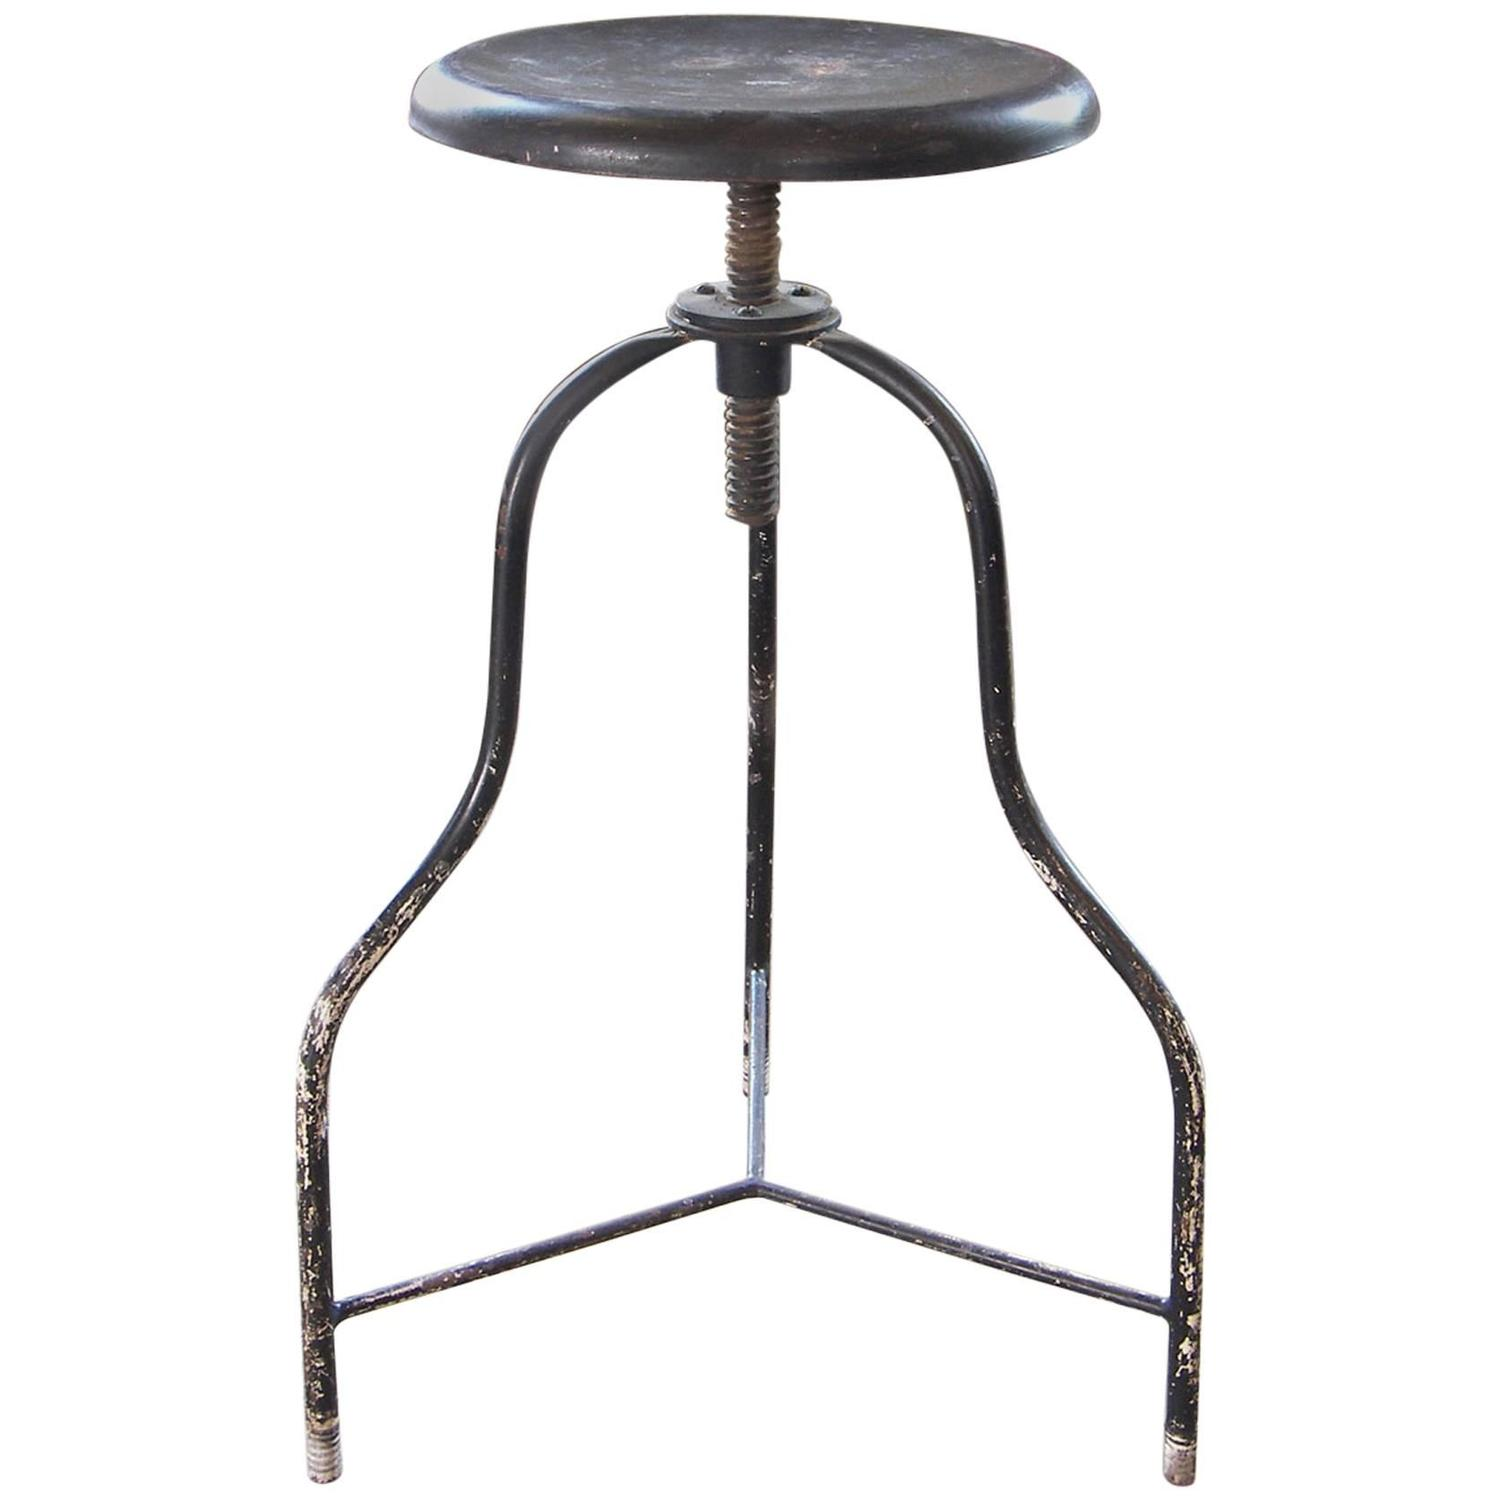 Vintage Black Metal Medical Stool with Three Legs Adjustable Seat Height For Sale at 1stdibs  sc 1 st  1stDibs : rolling medical stool - islam-shia.org